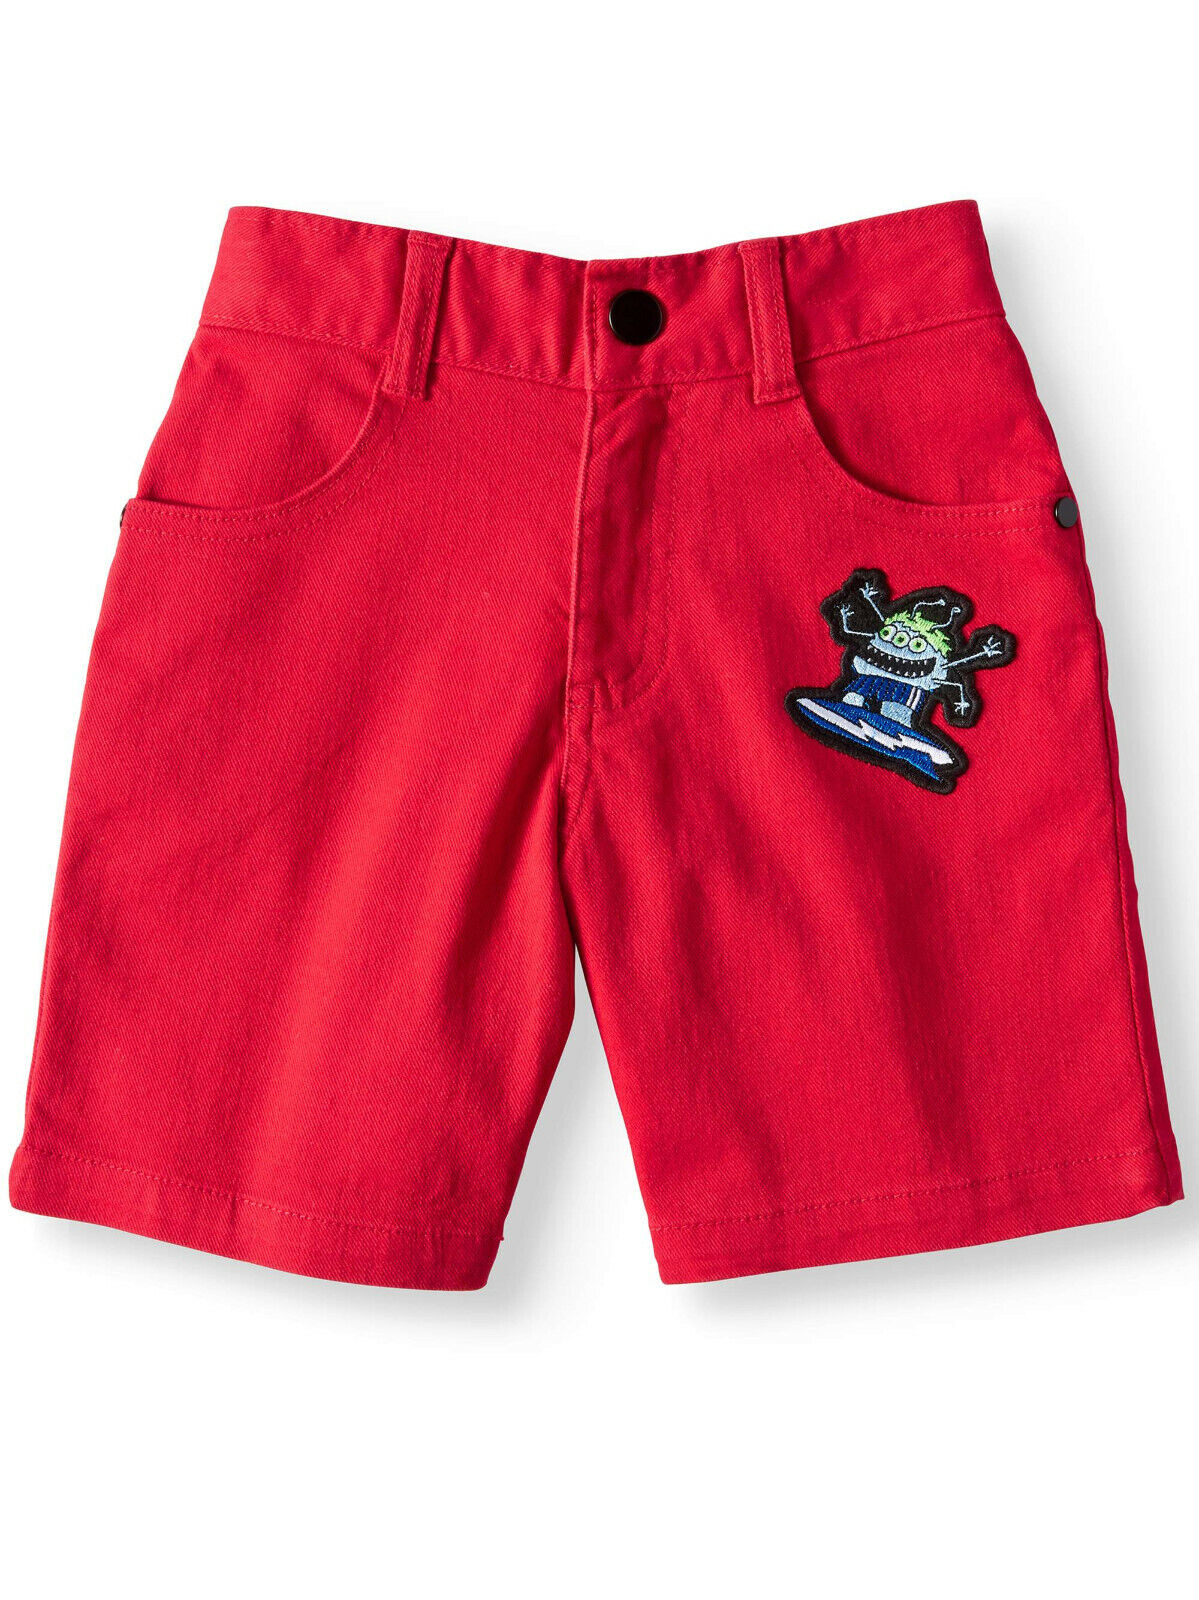 365 Kids from Garanimals Boys' Stretch Twill Shorts with Pat